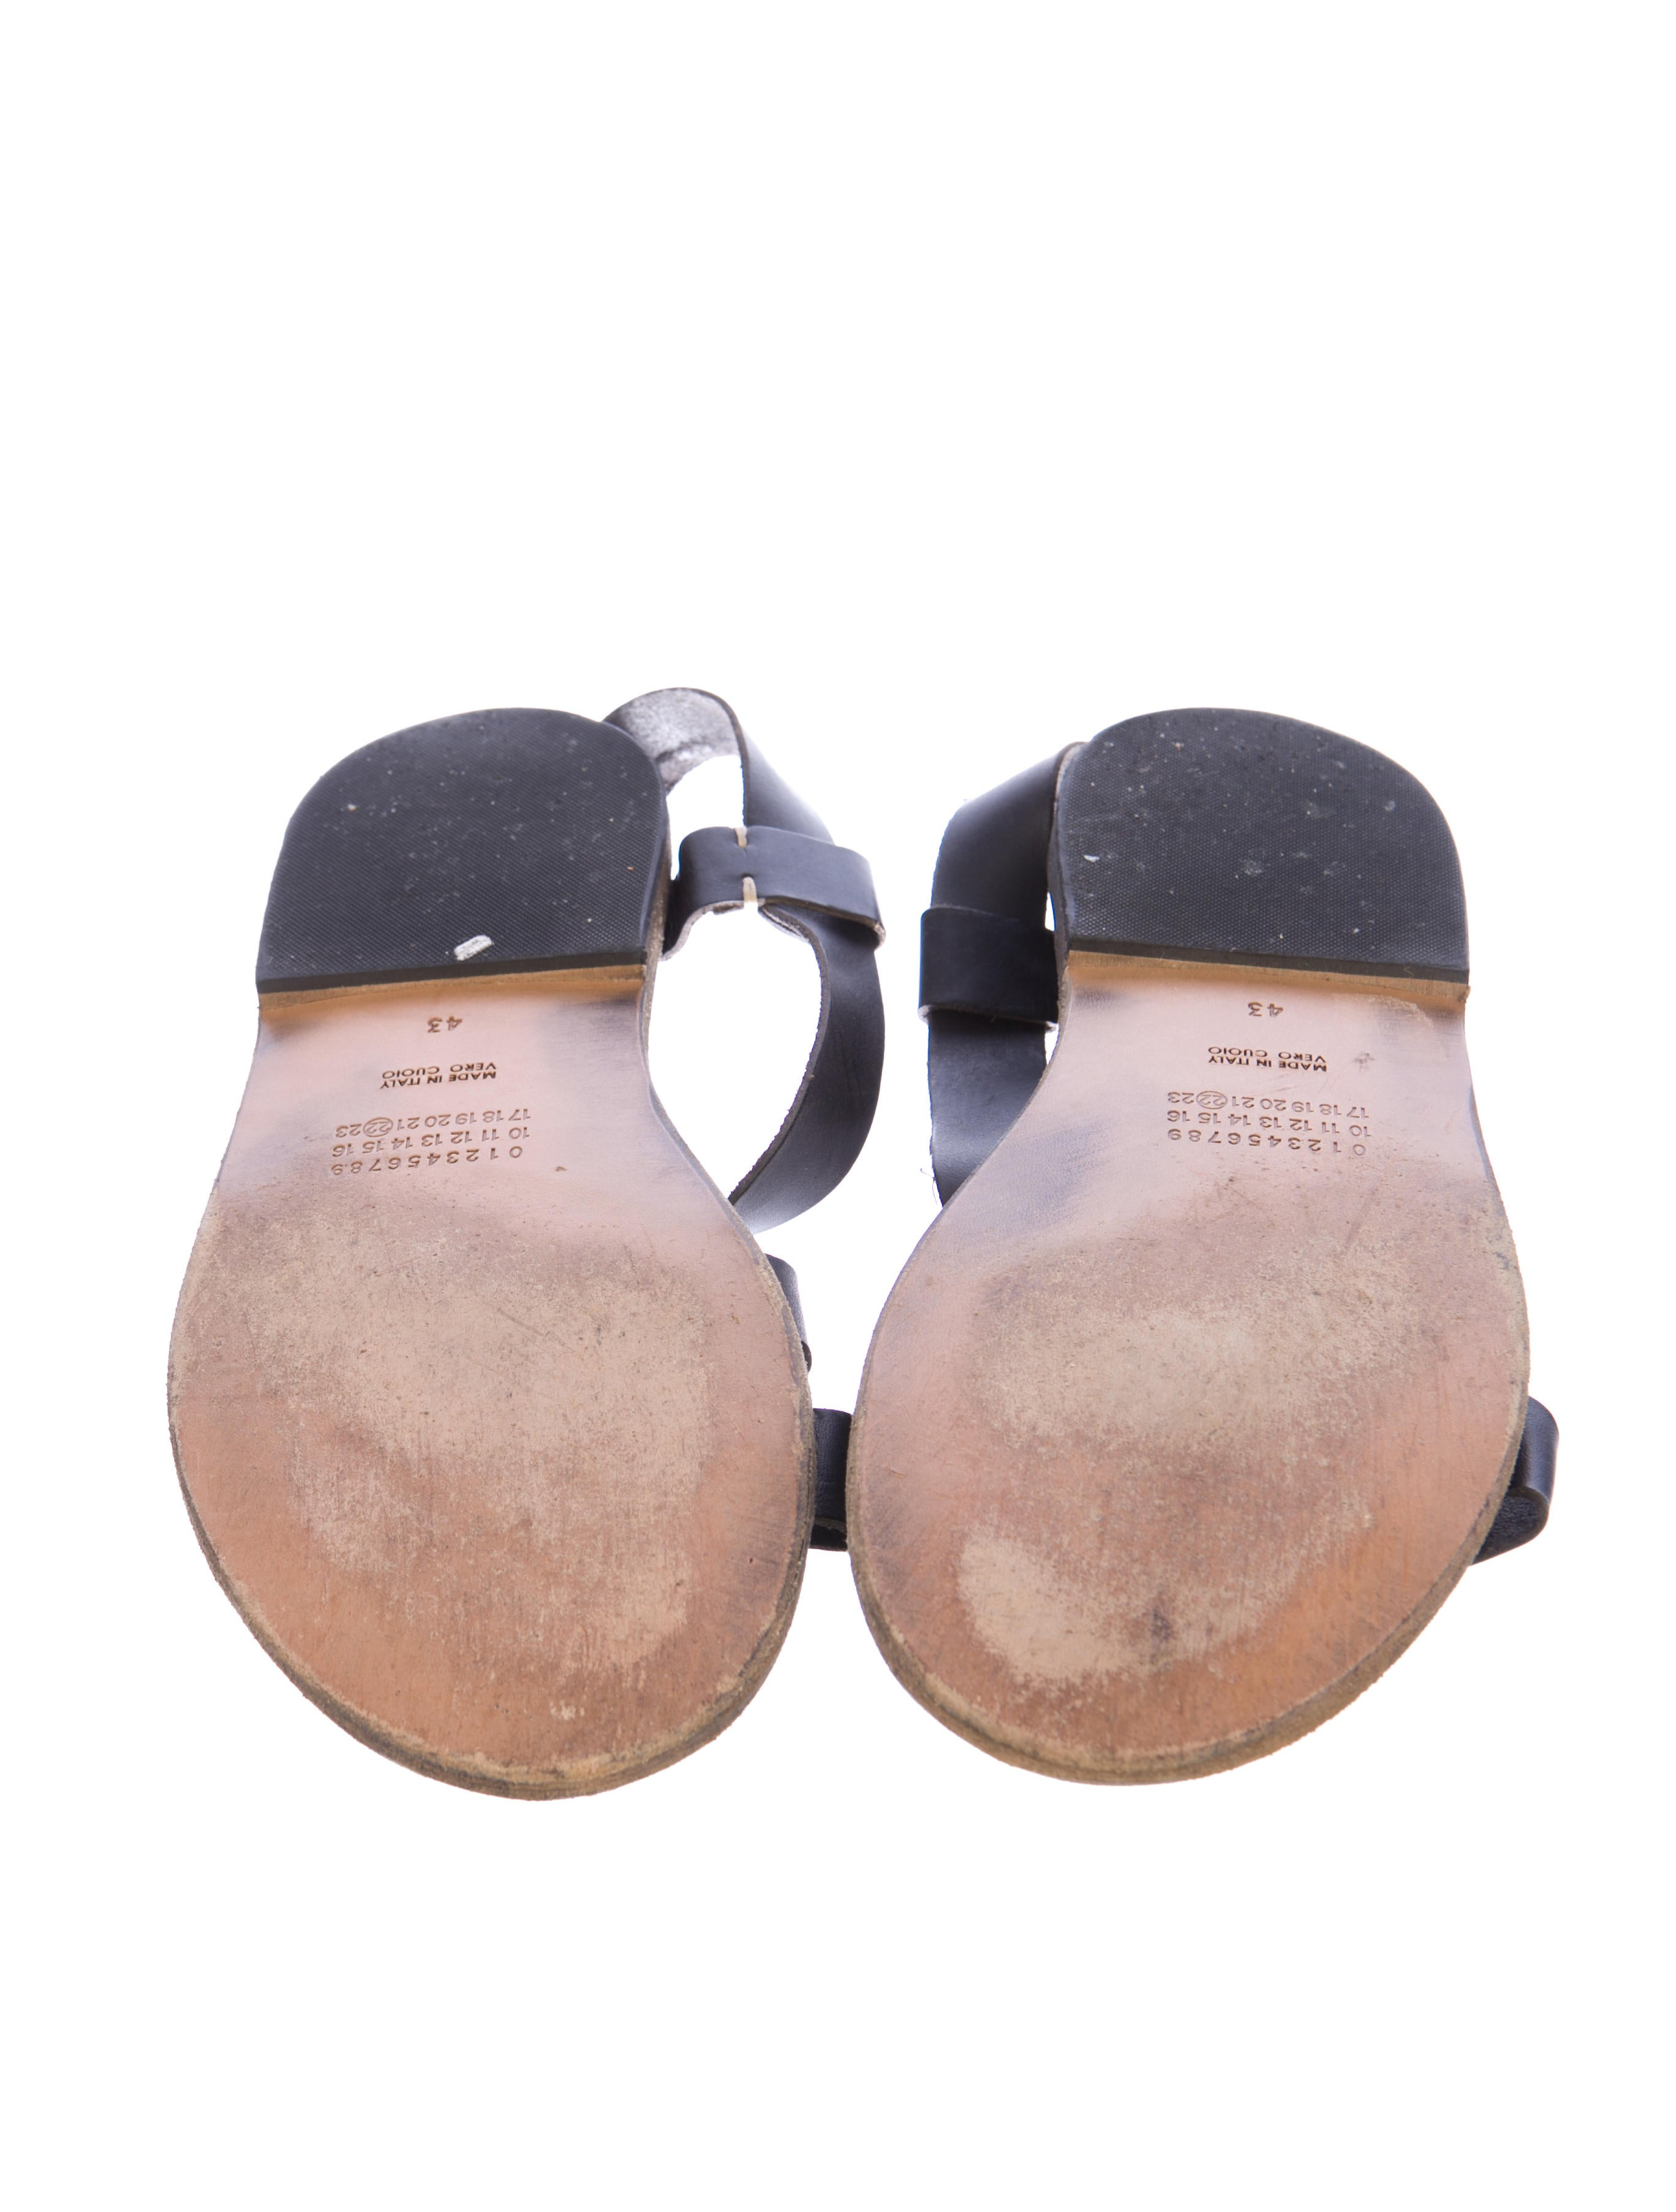 088abcf0aac0cc Maison Martin Margiela Sandals - Shoes - MAI21988